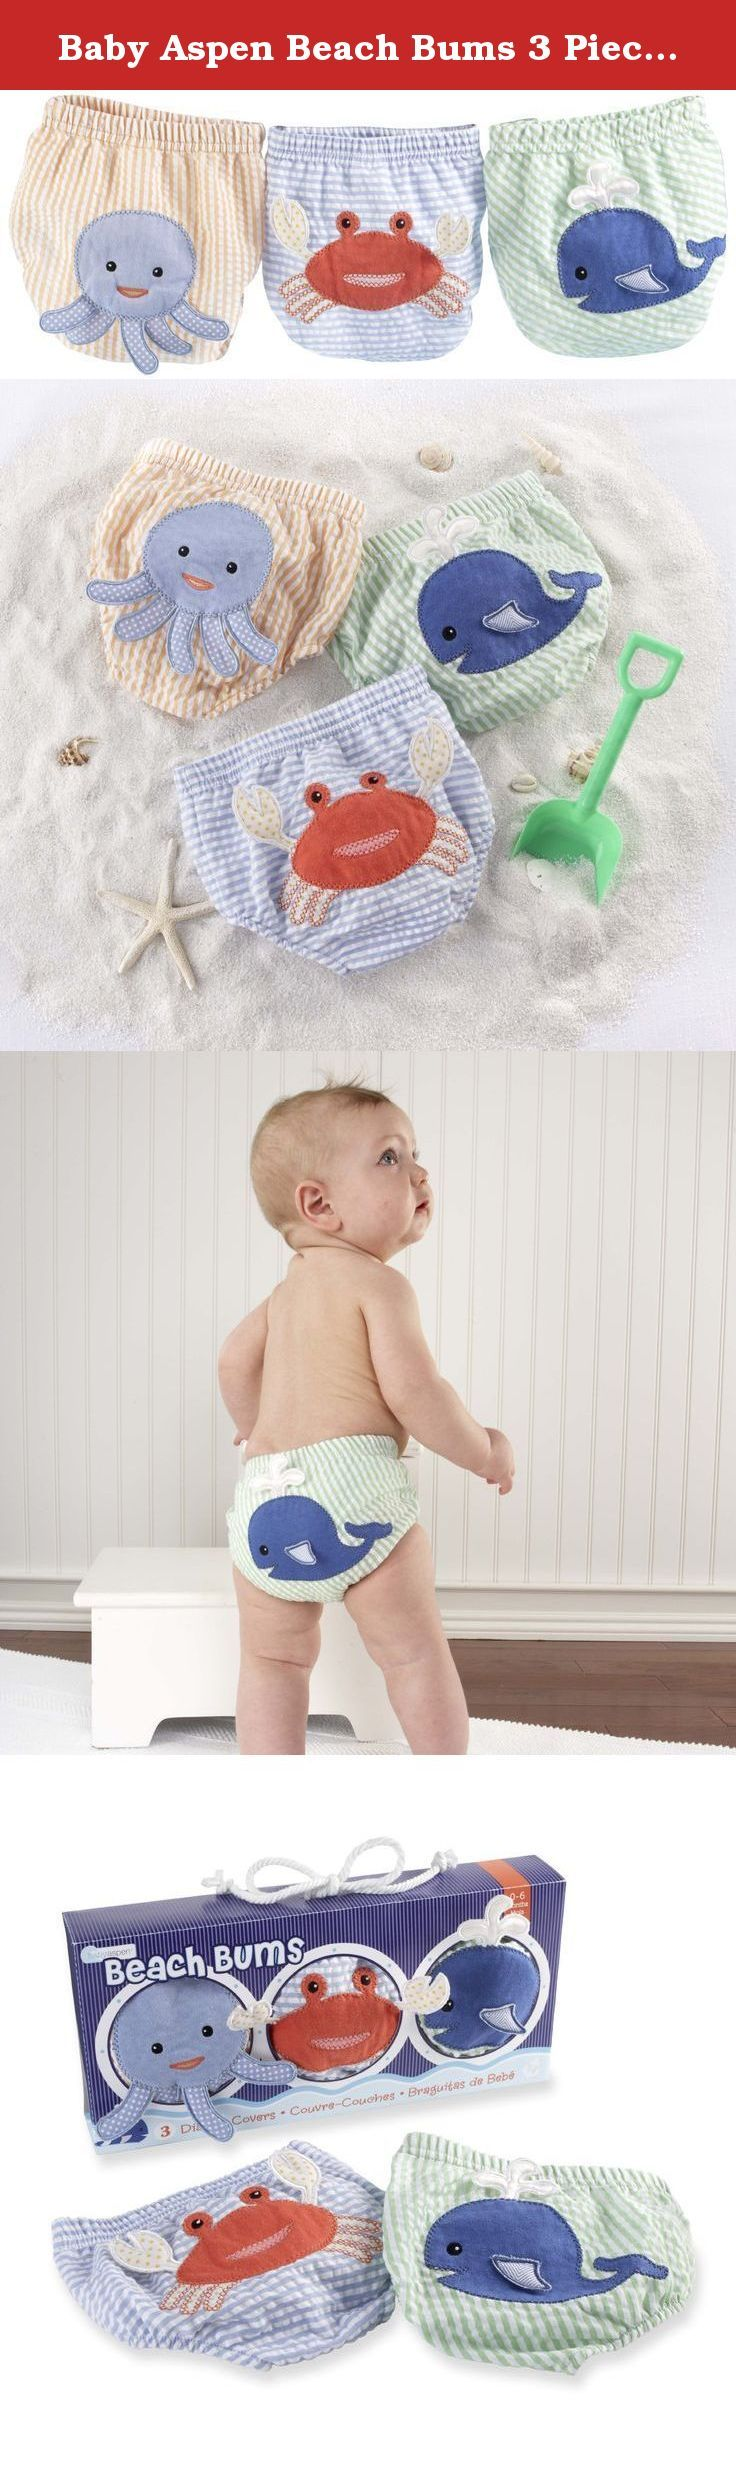 Baby Aspen Beach Bums 3 Piece Bloomers, 0-6 Months. All little beach bums want to sit by the ocean blue in style, and Baby Aspen has them covered. These three saltwater swimmers from the bottom of the sea will have a whale of a time tagging along on baby's bottom. Talk about the catch of the day. Features and facts: Sea sational diaper cover gift set includes three seersucker diaper covers. Pastel orange and white striped diaper cover has a smiling blue octopus with 3D legs on the bum;...